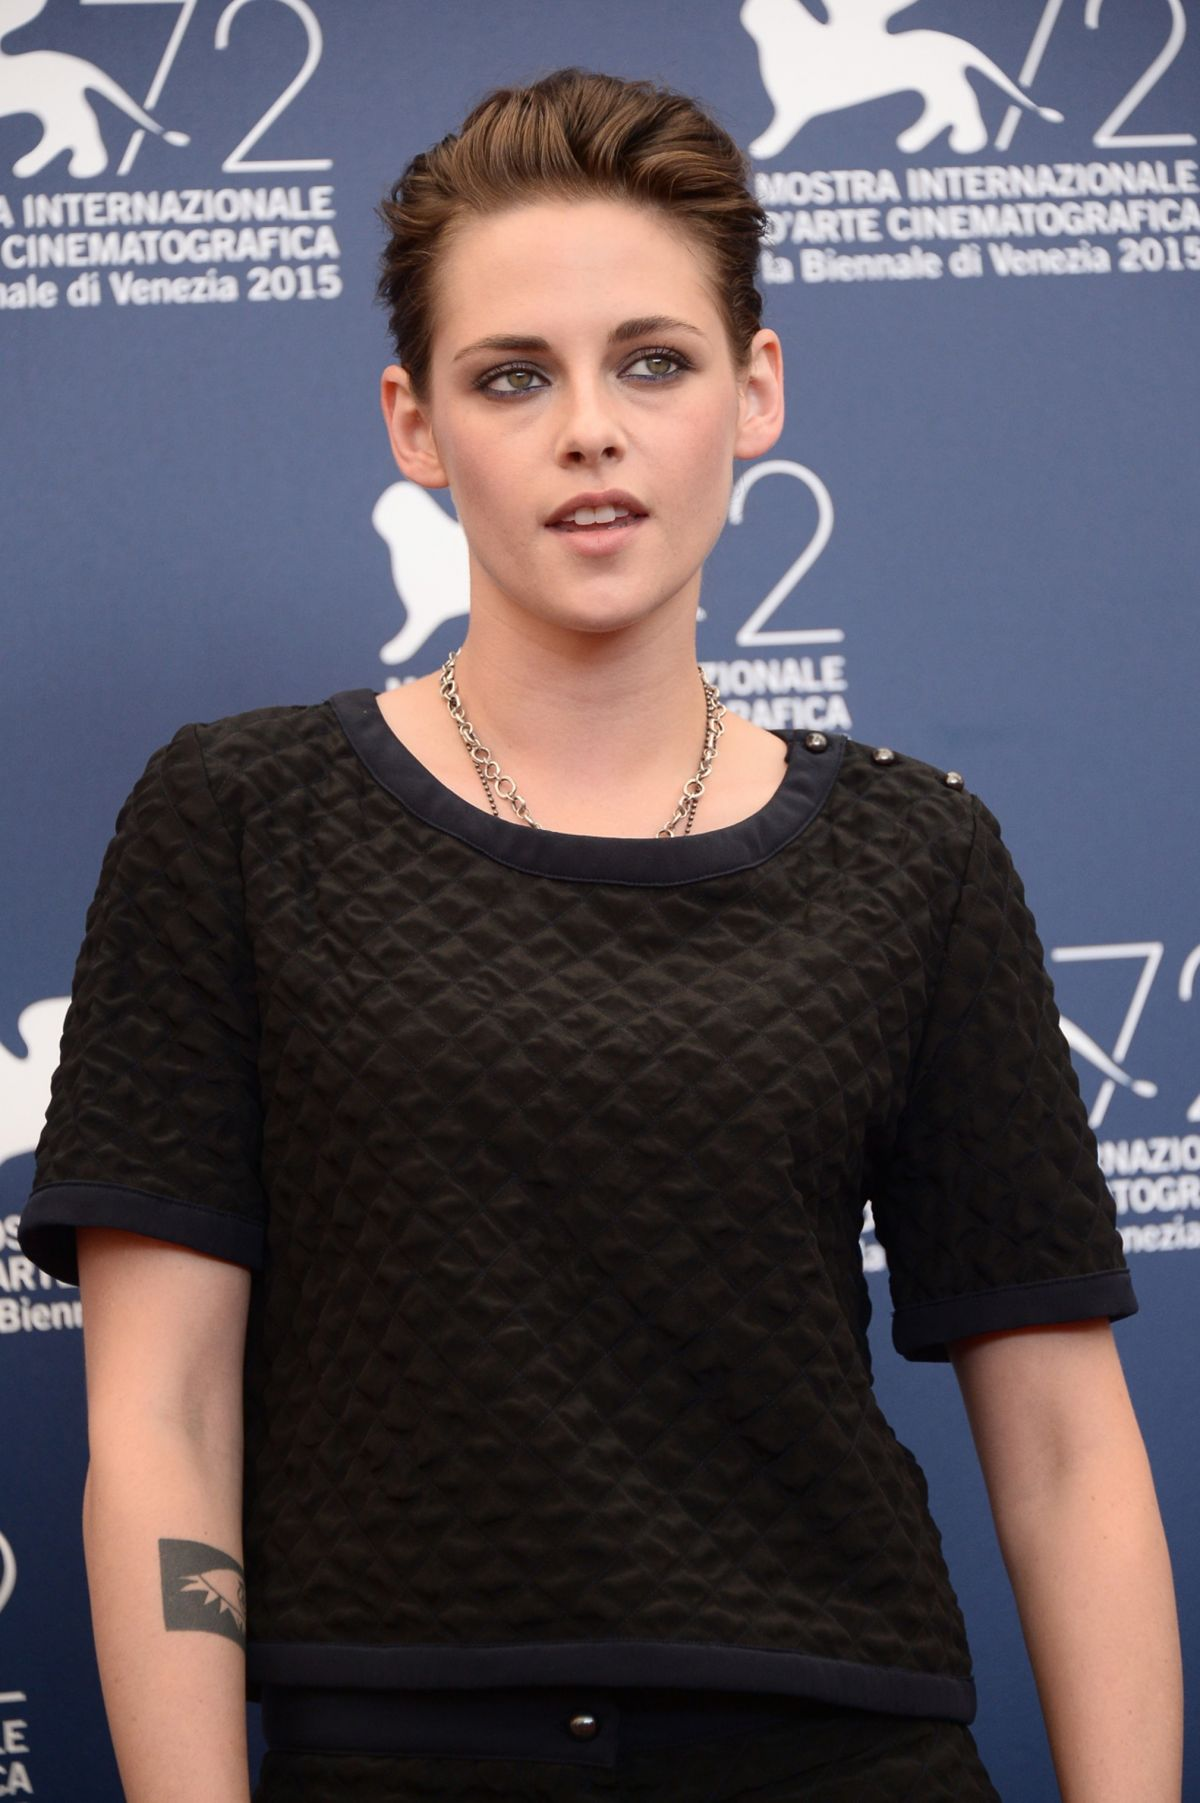 KRISTEN STEWART at Equals Photocall at 2015 Venice Film Festival –  HawtCelebs